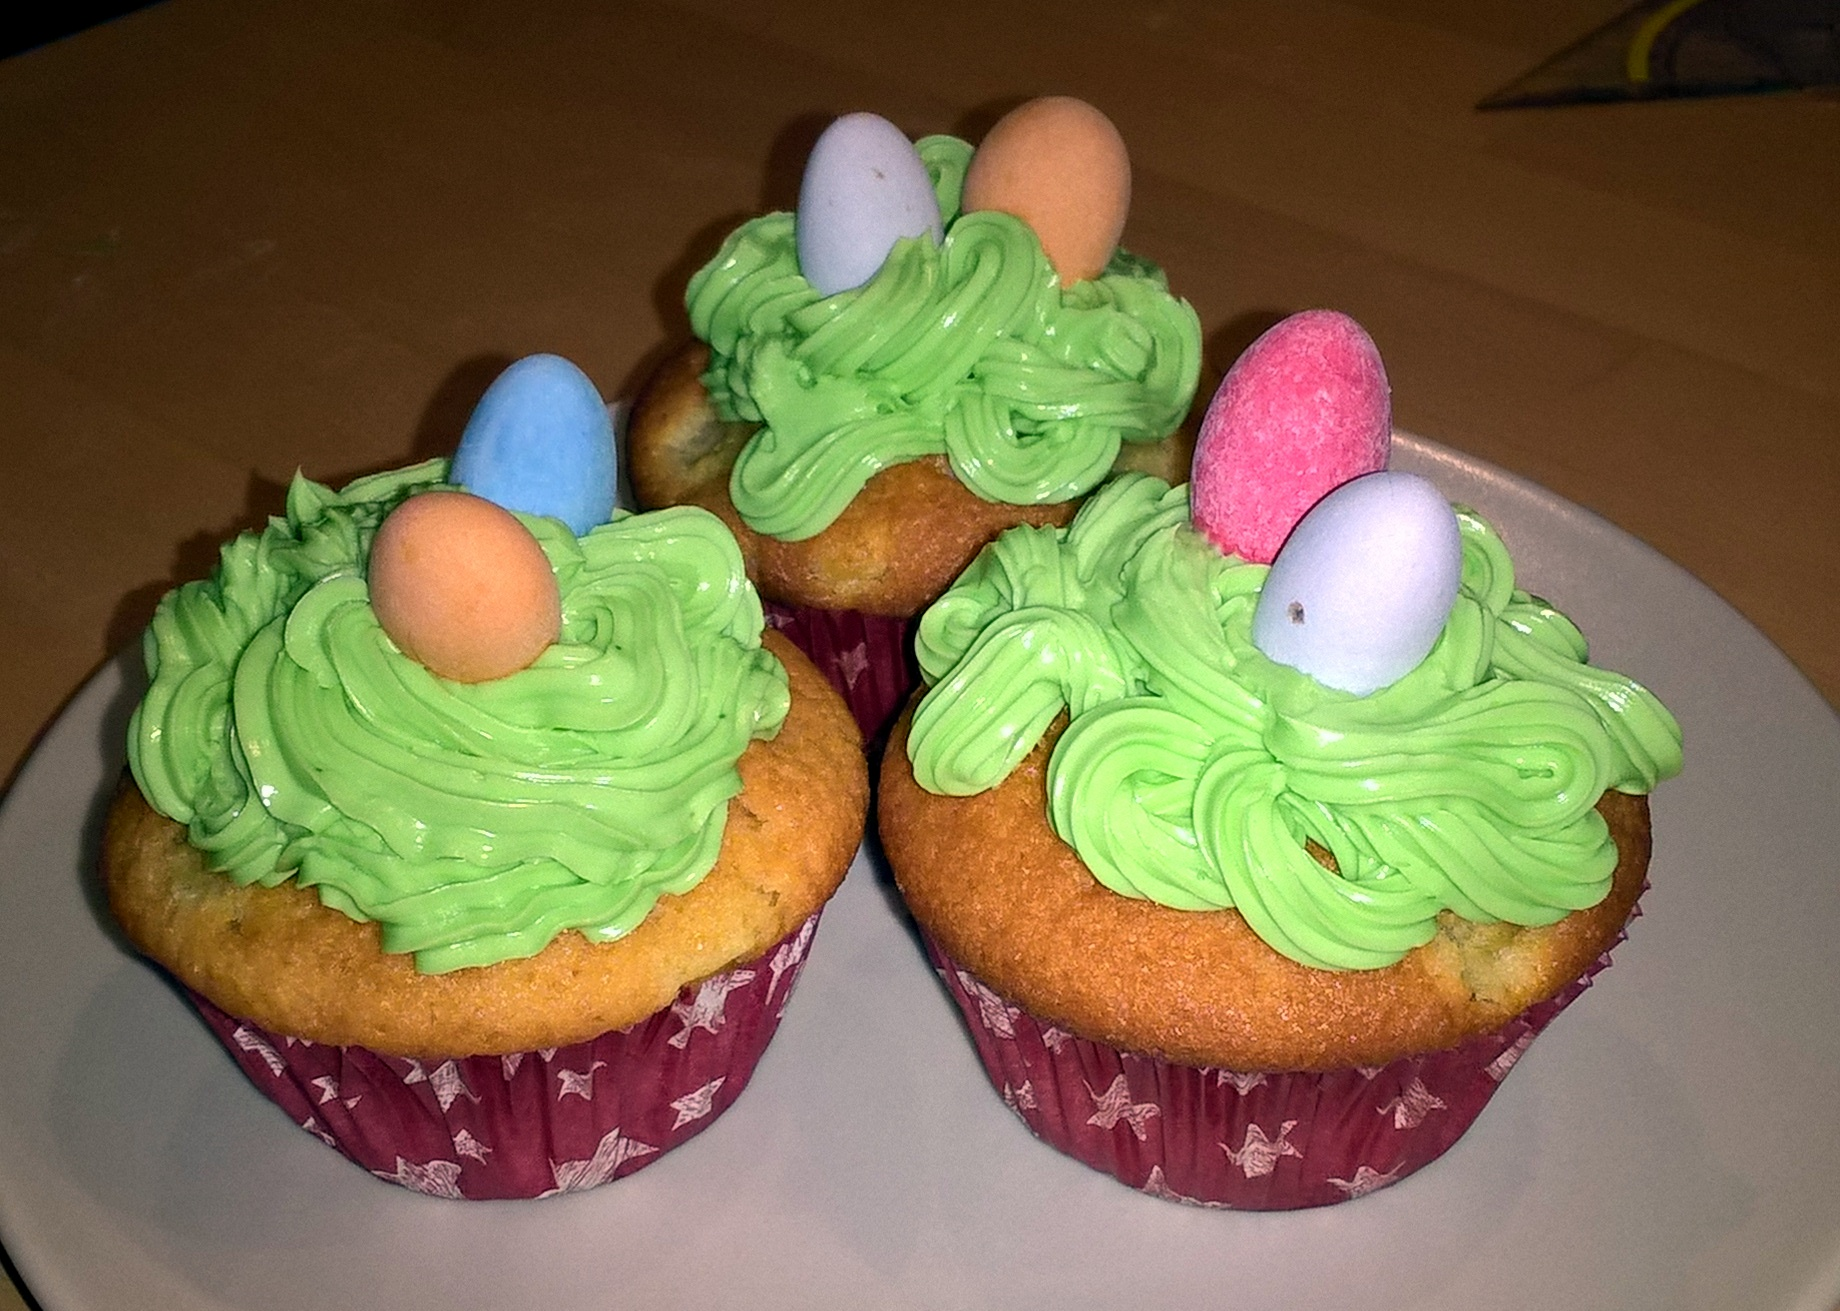 Leckere Osternest-Cupcakes mit Buttercrème-Topping